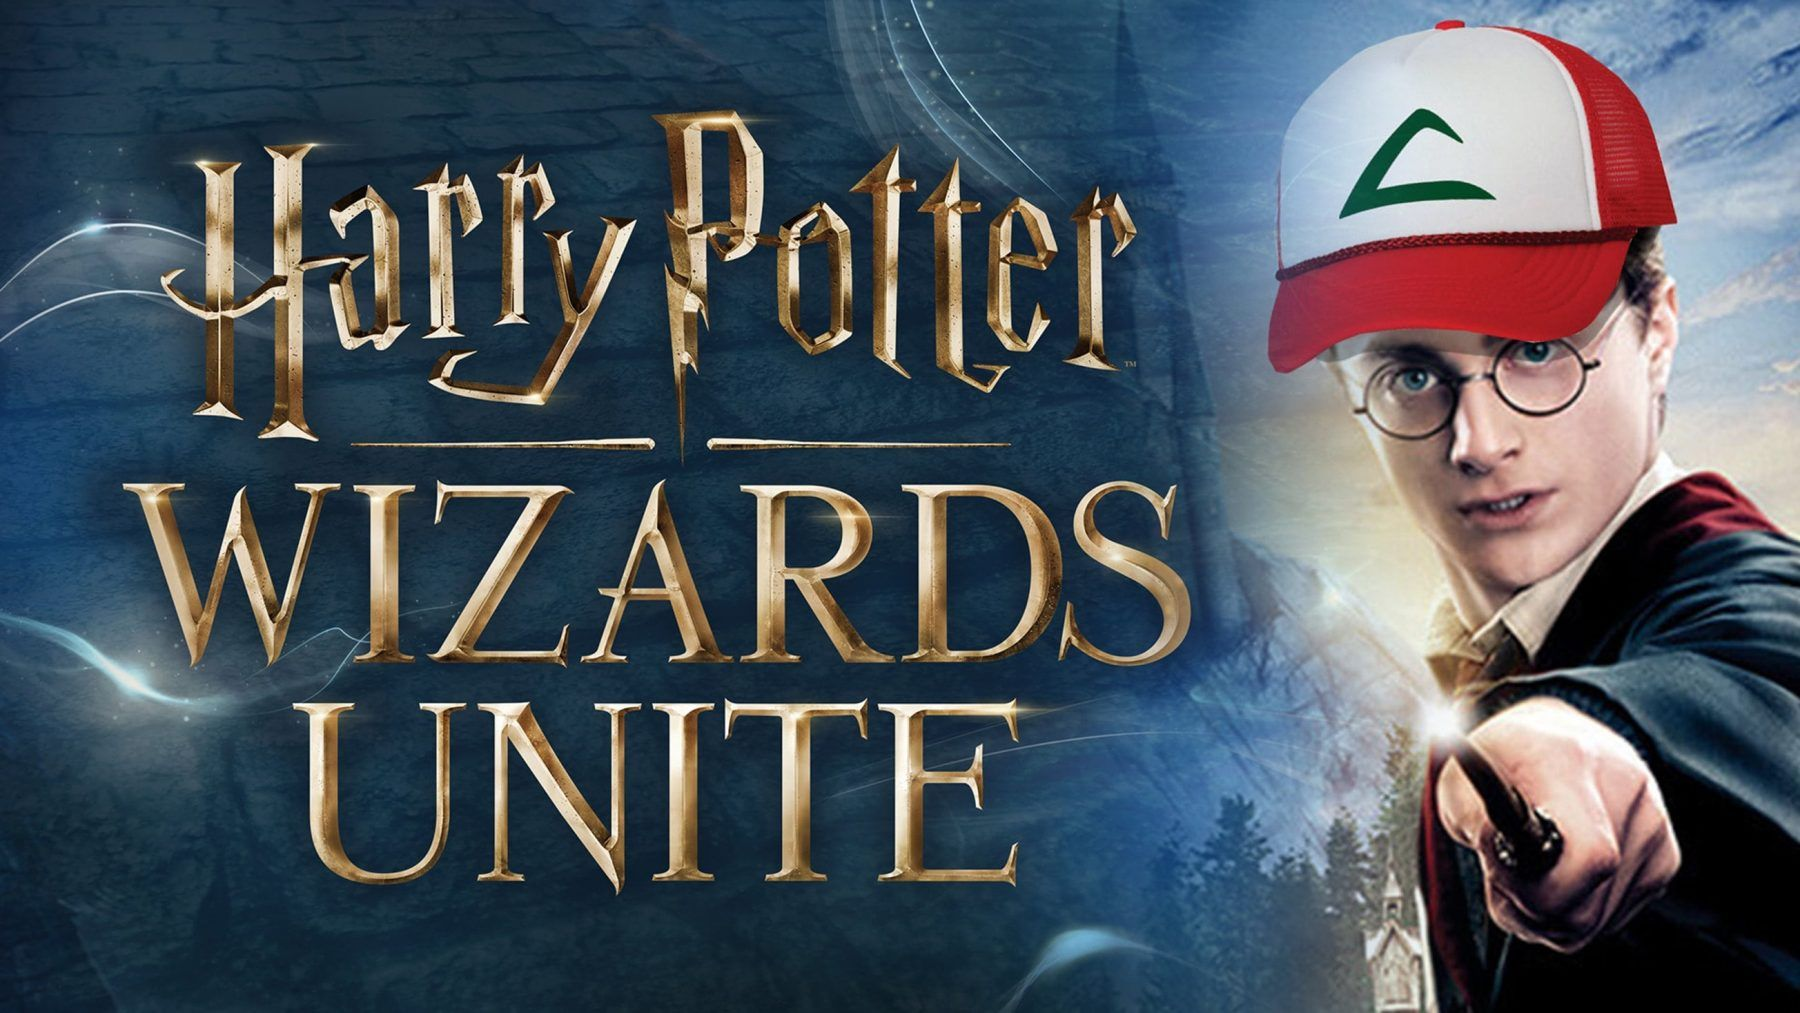 Harry Potter Wizards Unite Hd Wallpapers 7wallpapers Net Harry Potter Potter Harry